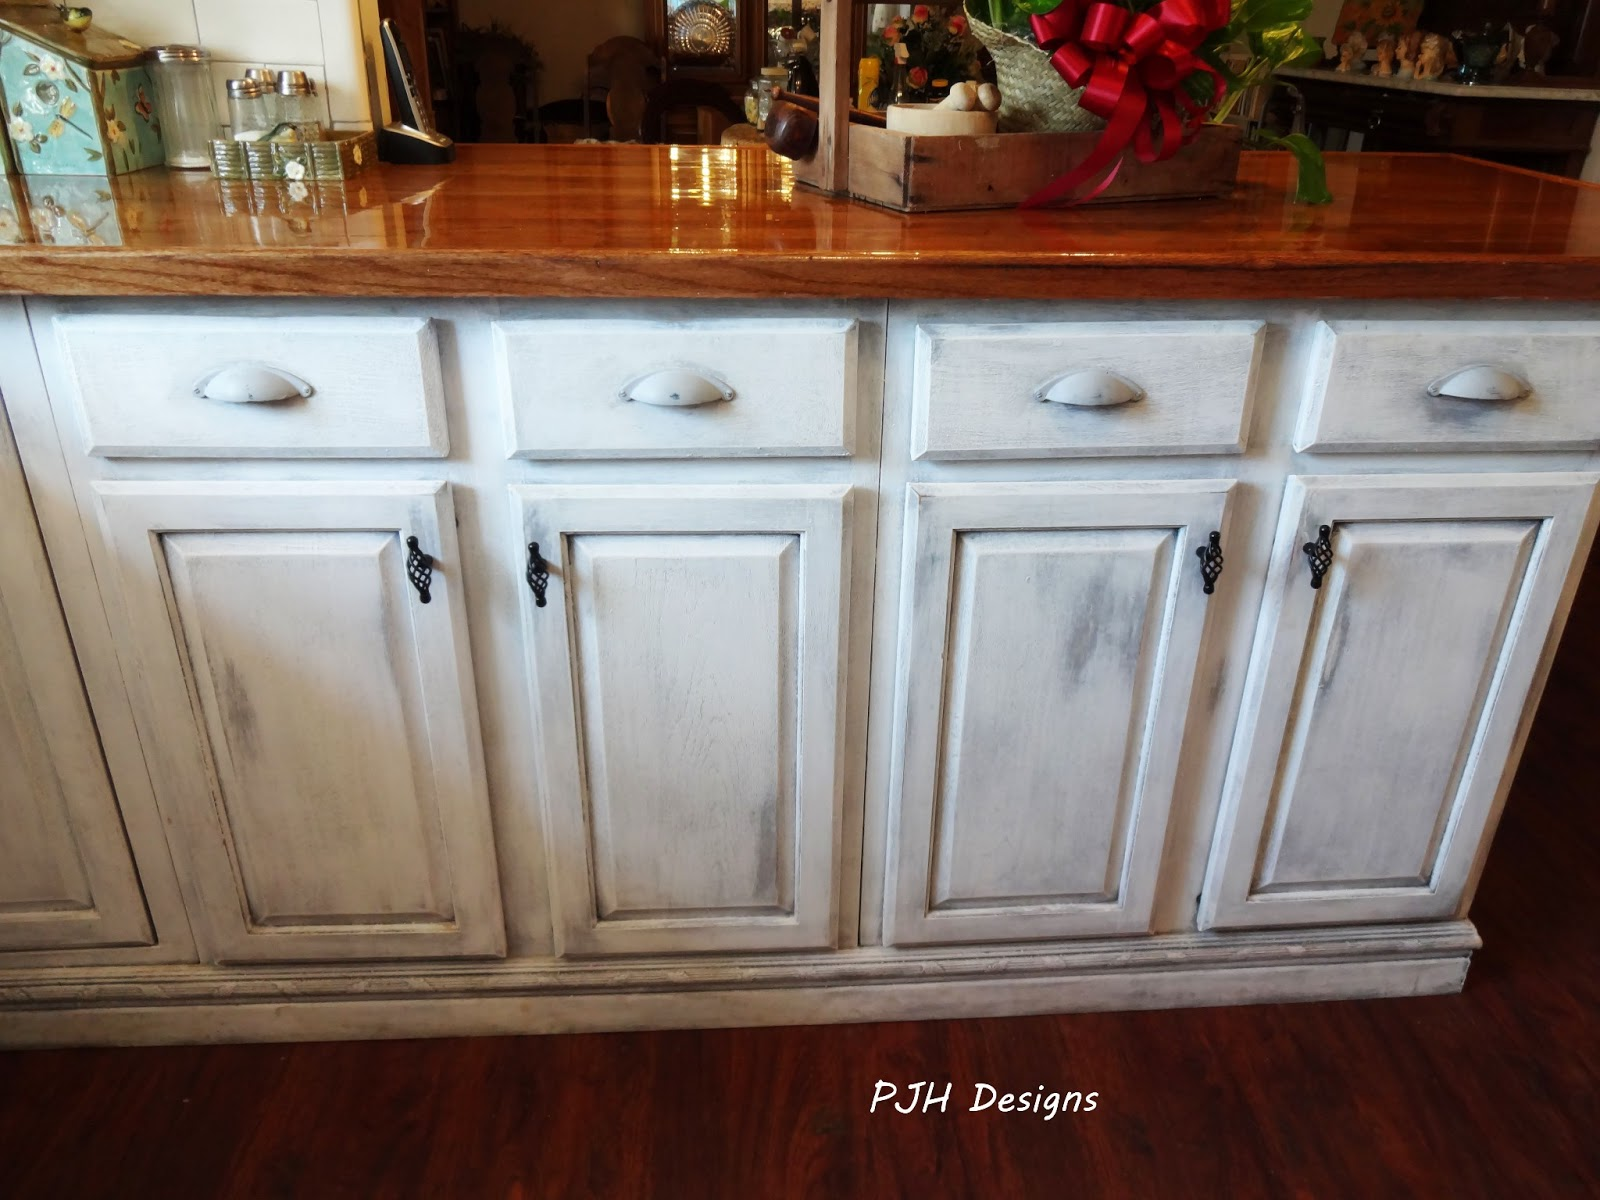 Pjh designs hand painted antique furniture how 39 s my for Can i paint kitchen cabinets with chalk paint